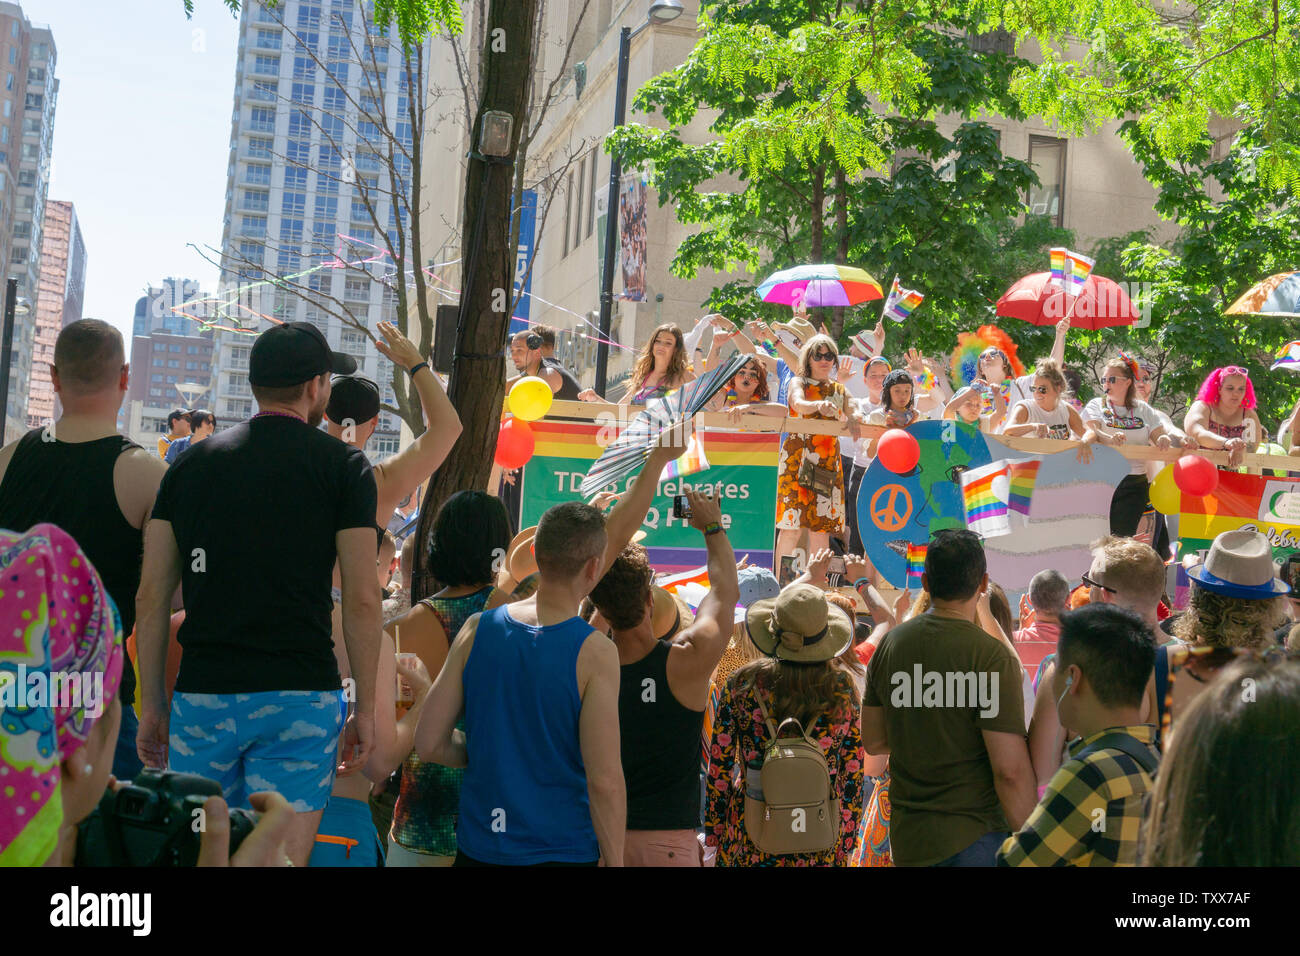 People put so much work and creativity into their floats during Pride. It was so inspiring! - Stock Image